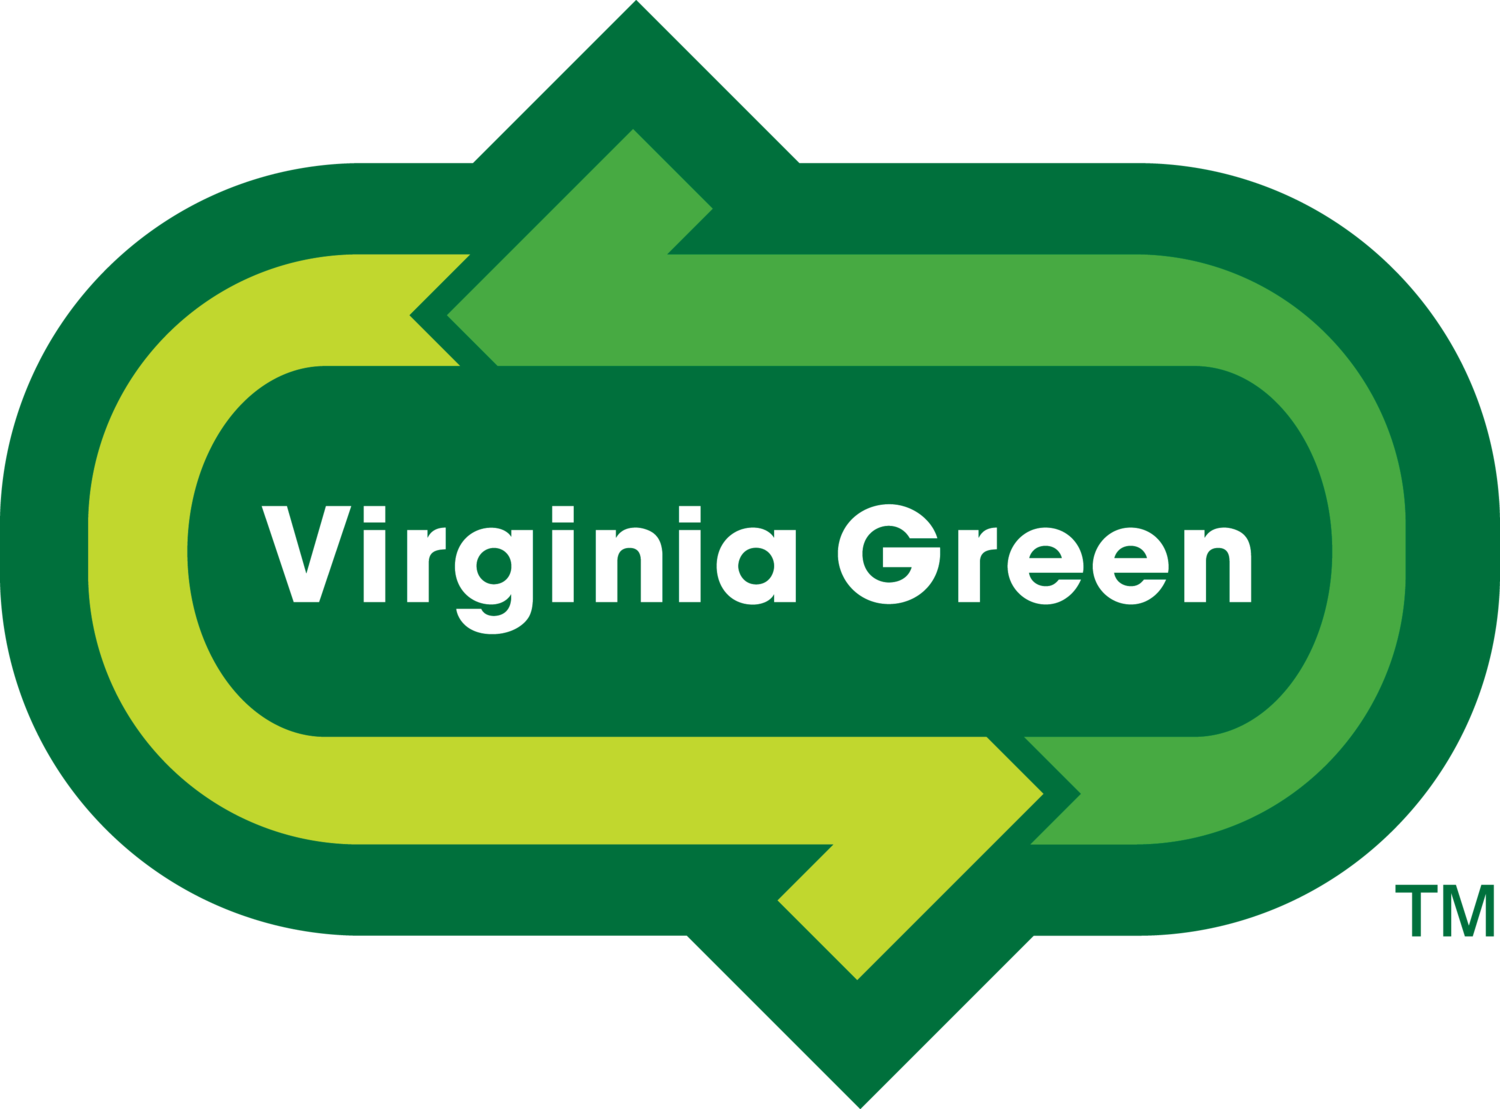 VAGreen_logo_trademark_PMS-1500PX.png